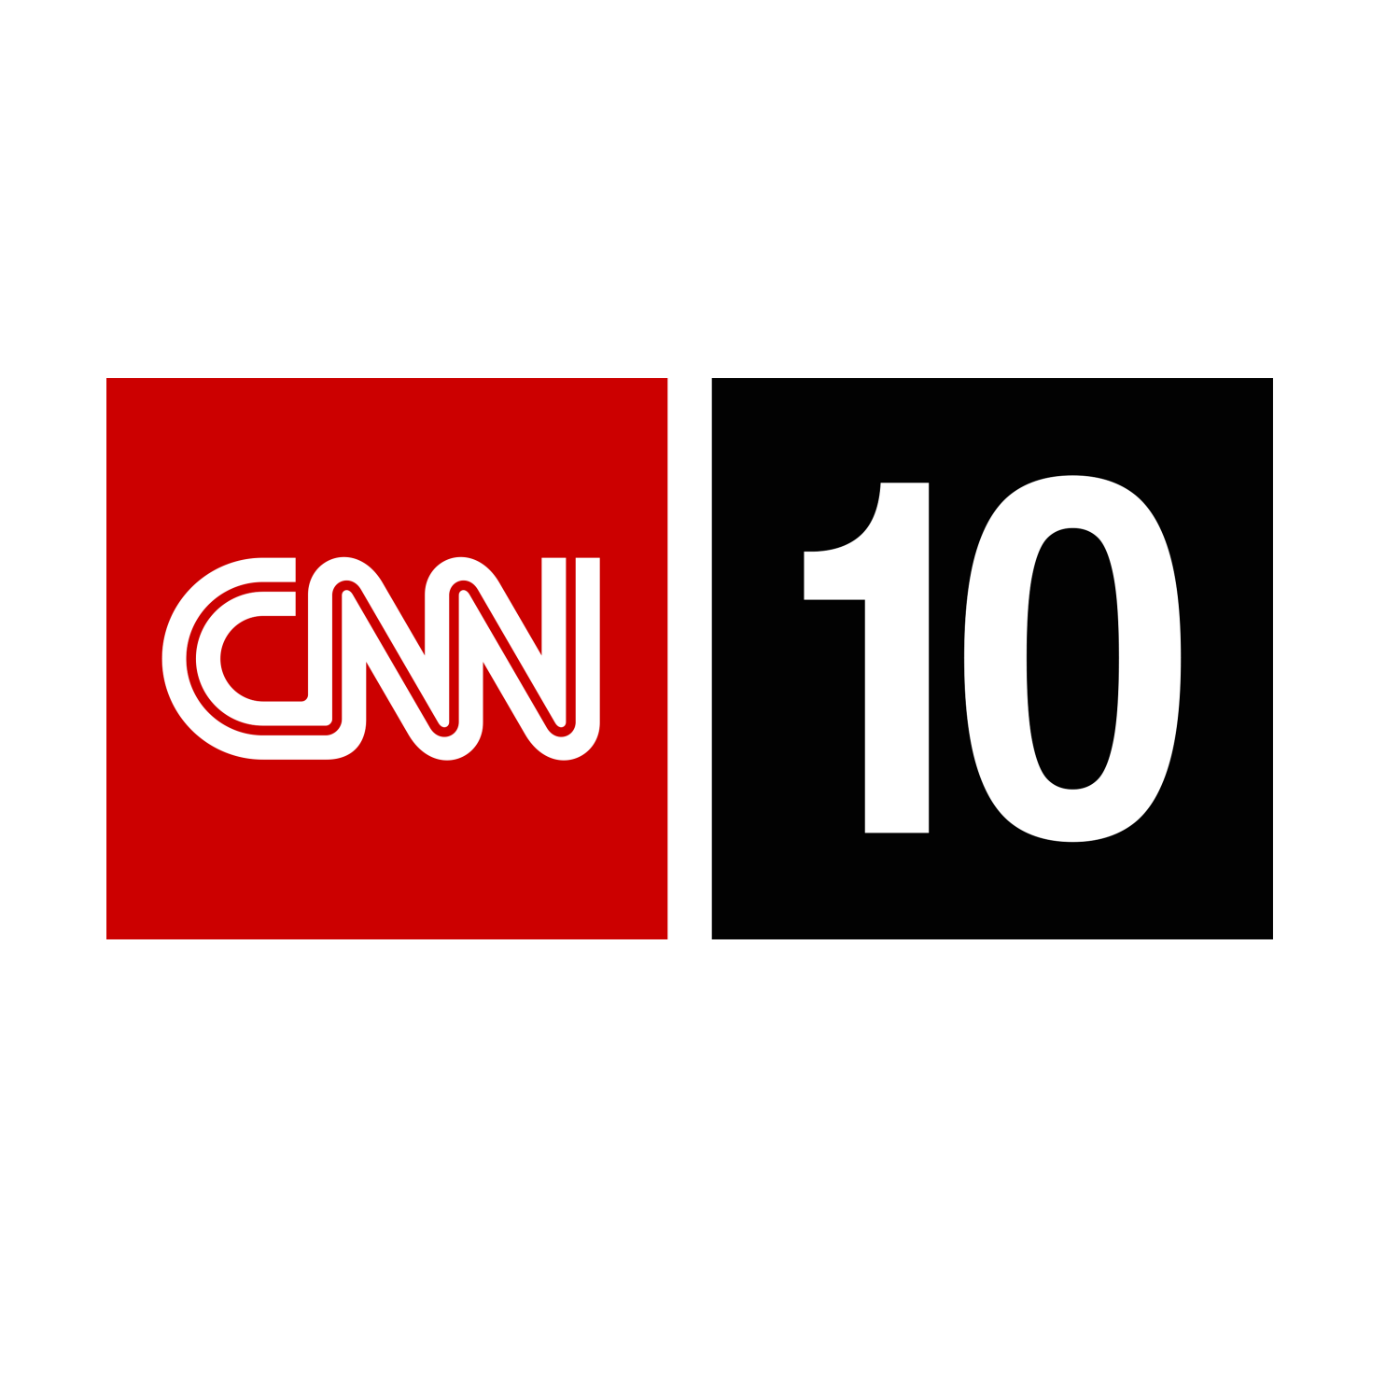 CNN Student News - October 1, 2012